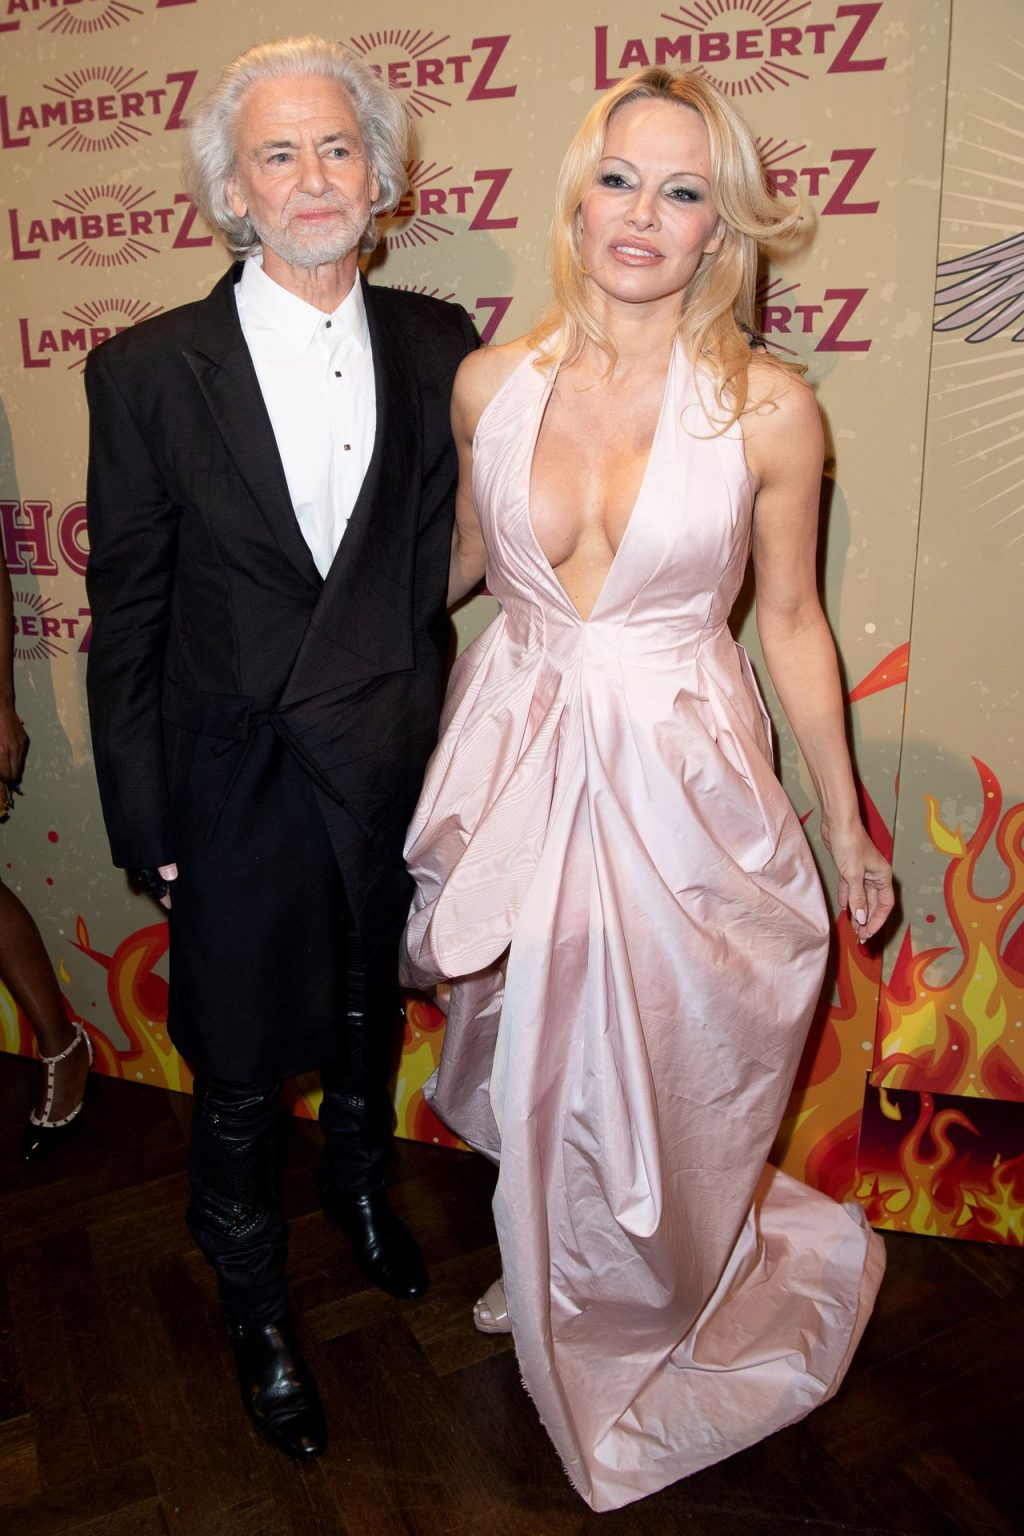 Pamela Anderson - Lambertz Monday Night 2019 in Cologne, 28 January 2019